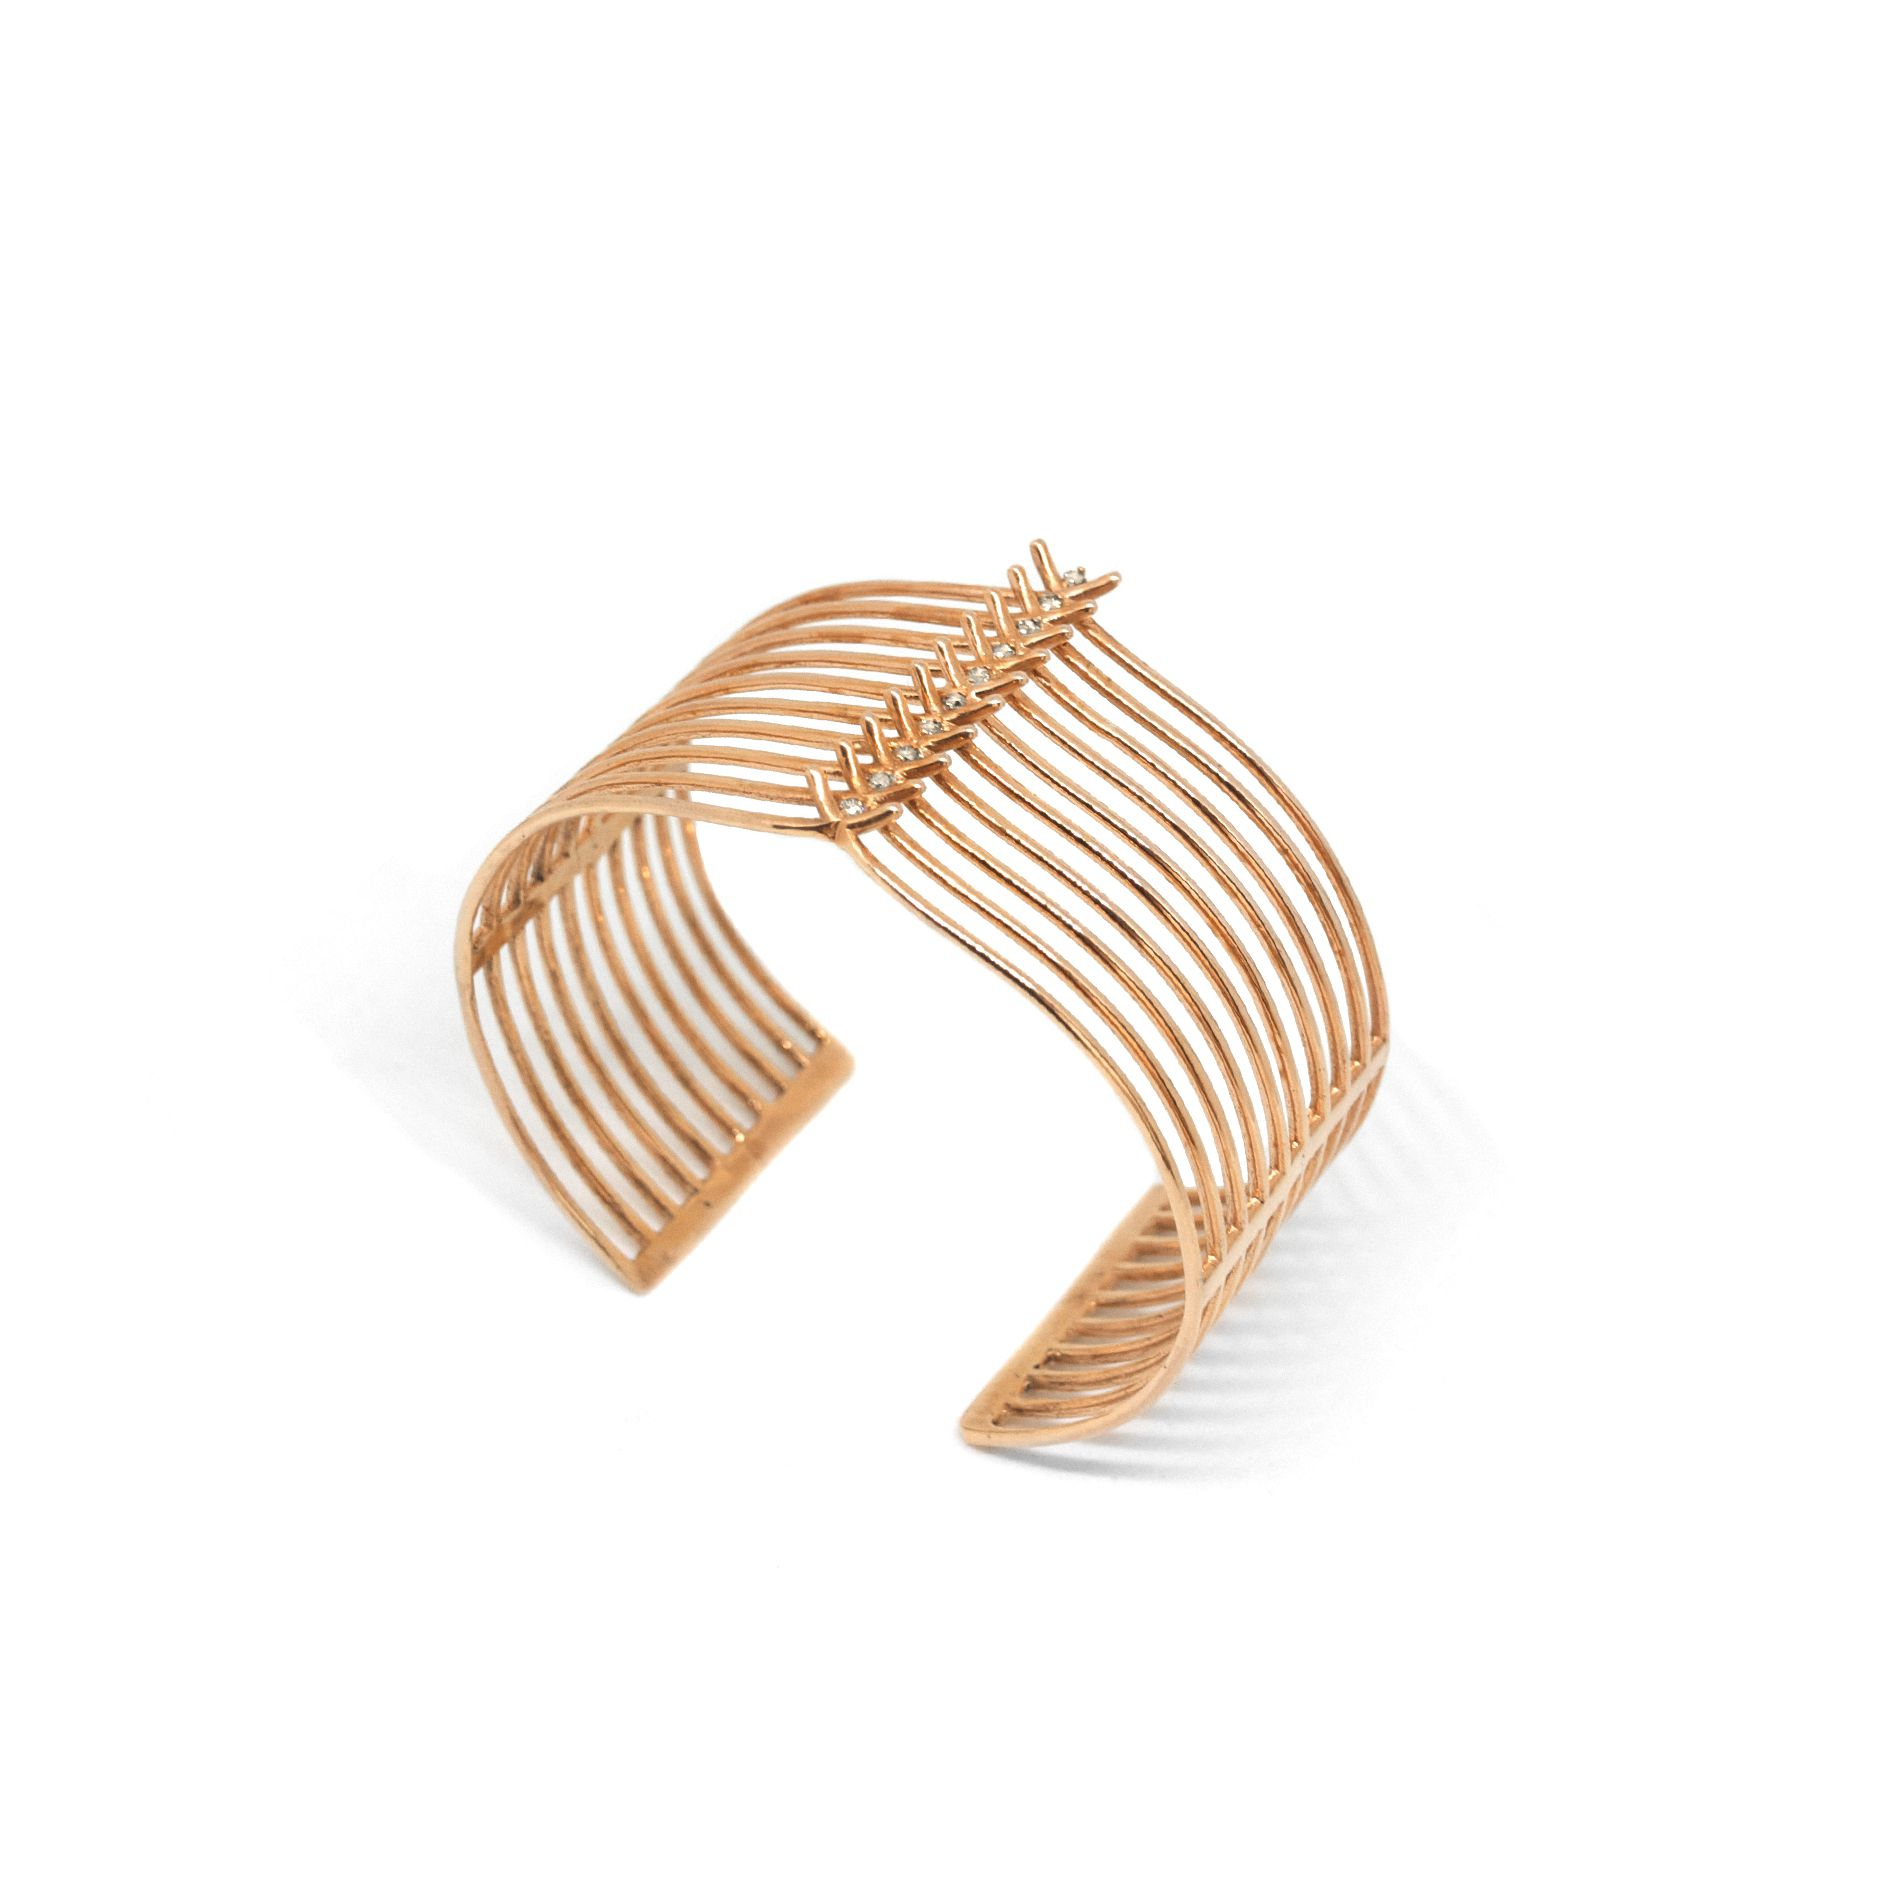 10 element 'Spinae' bracelet Bracelet in rose gold and diamonds